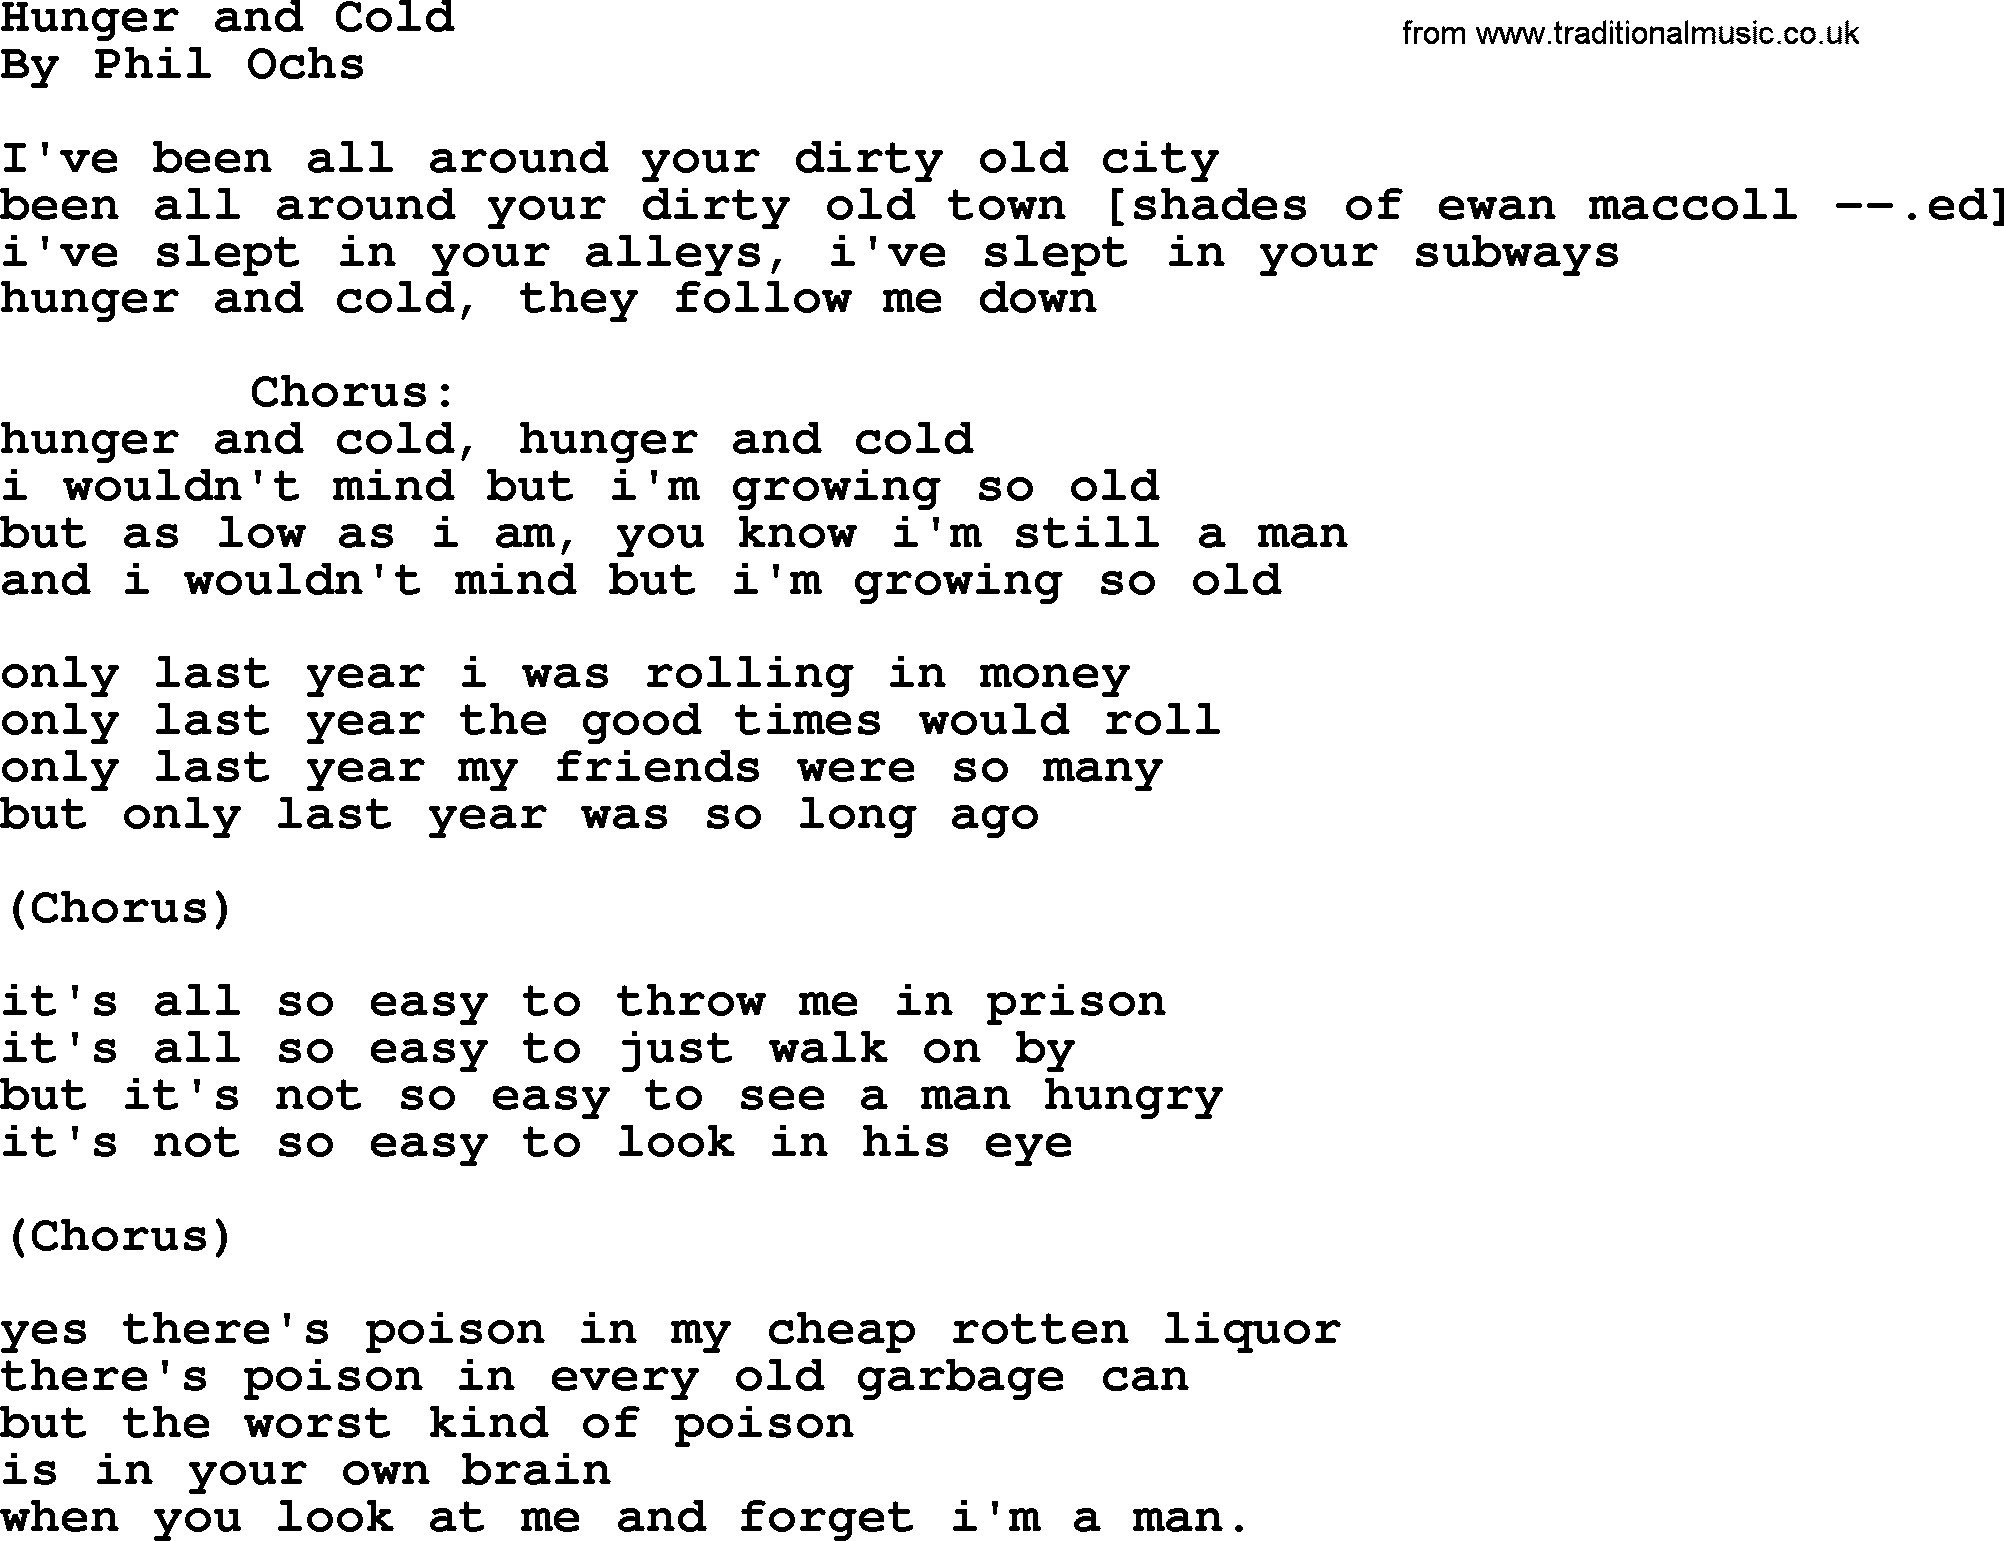 Phil ochs song hunger and cold phil ochs lyrics phil ochs song hunger and cold lyrics hexwebz Image collections